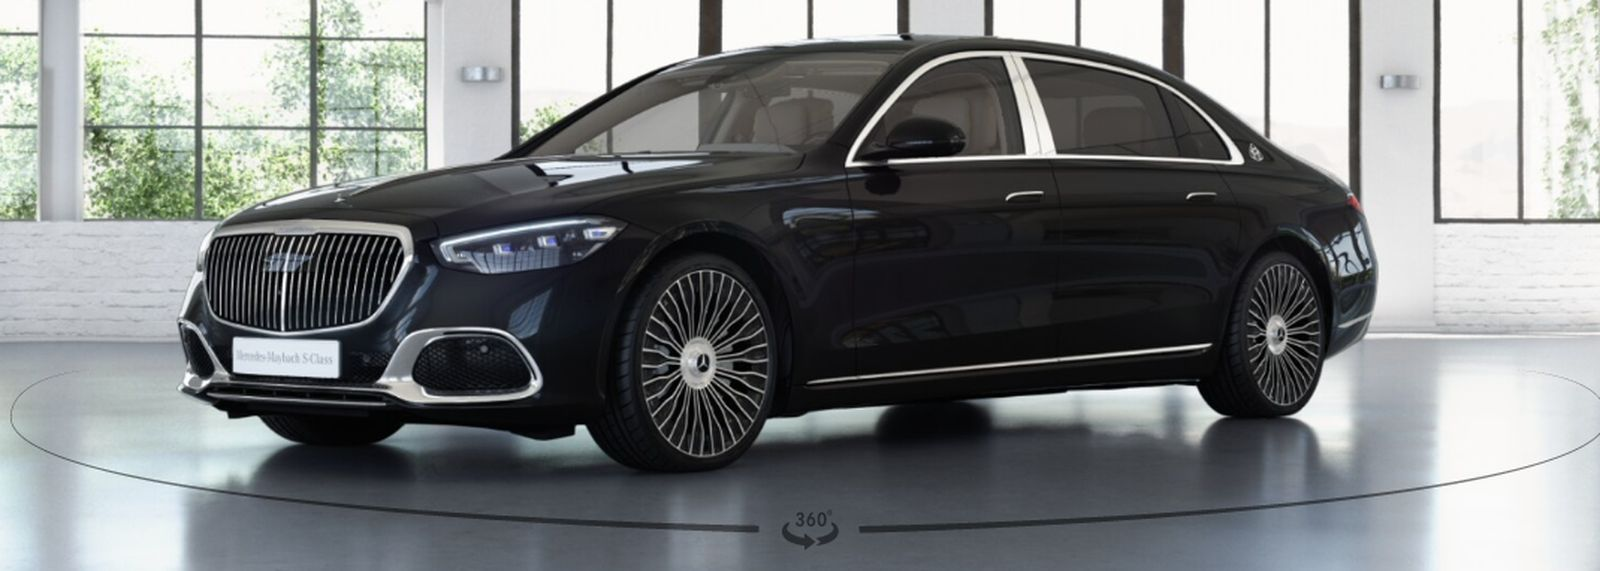 2021 Mercedes-Maybach S 580 4Matic